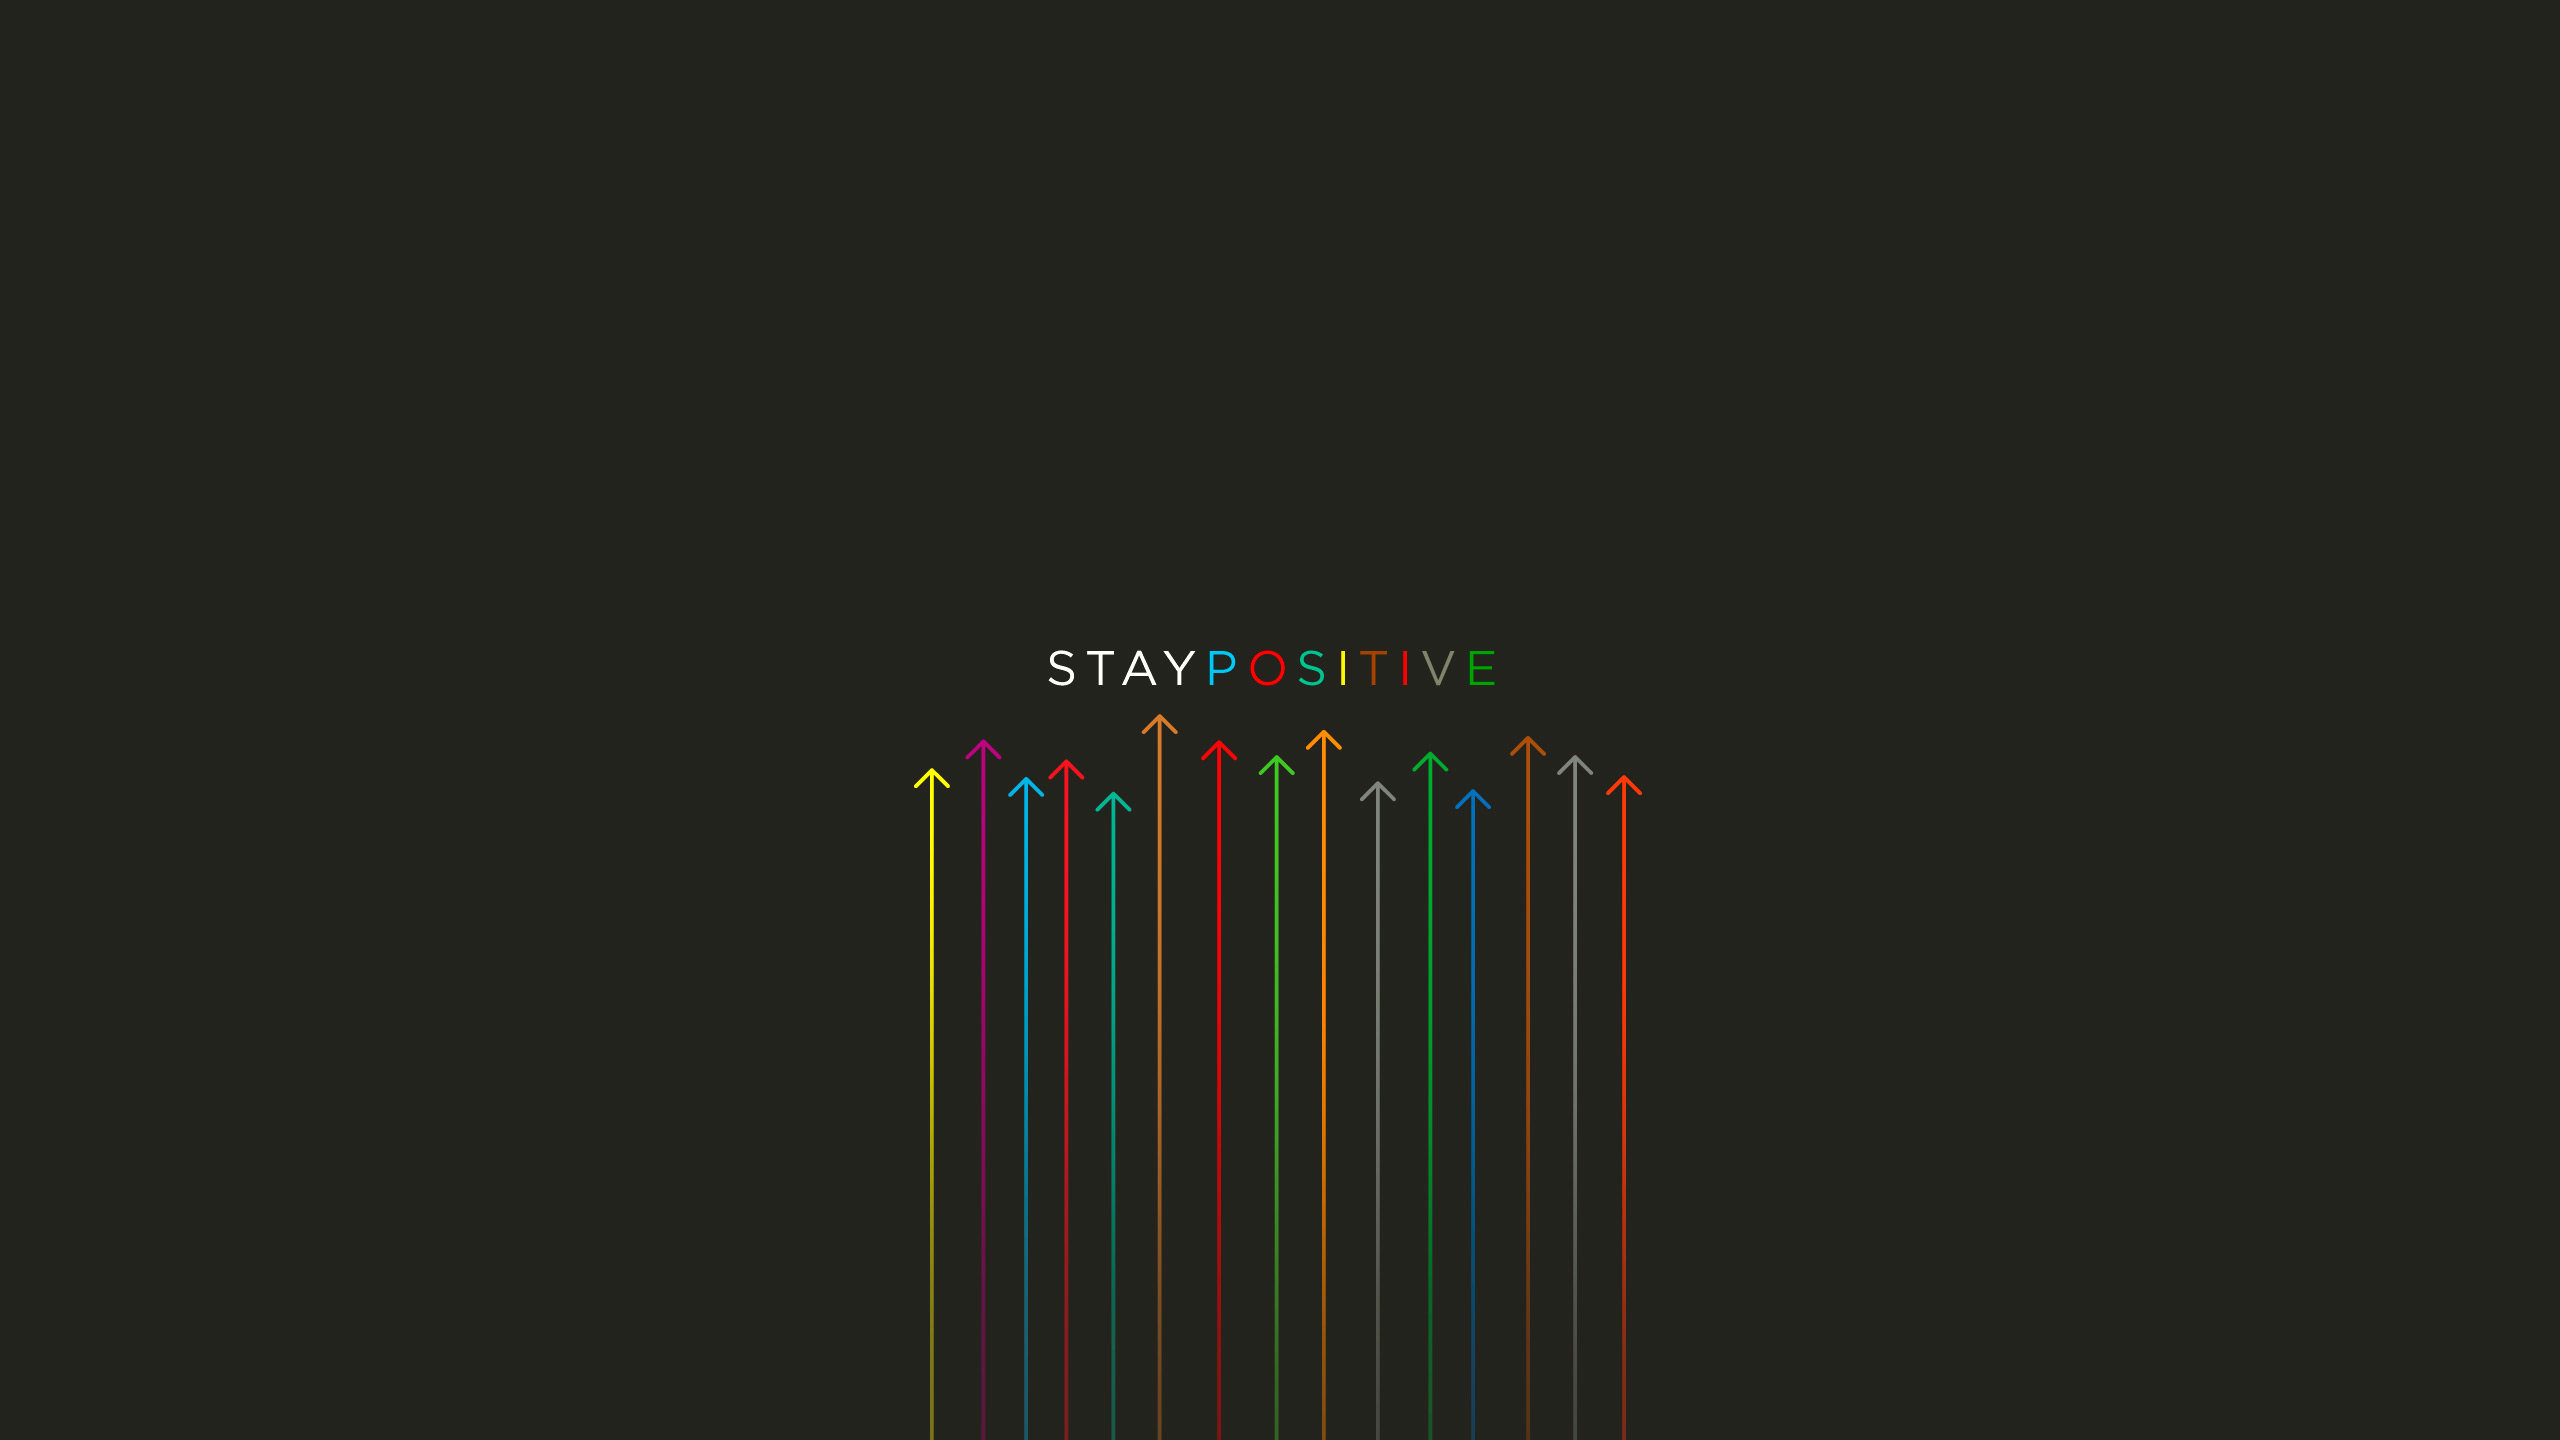 Positive Wallpaper